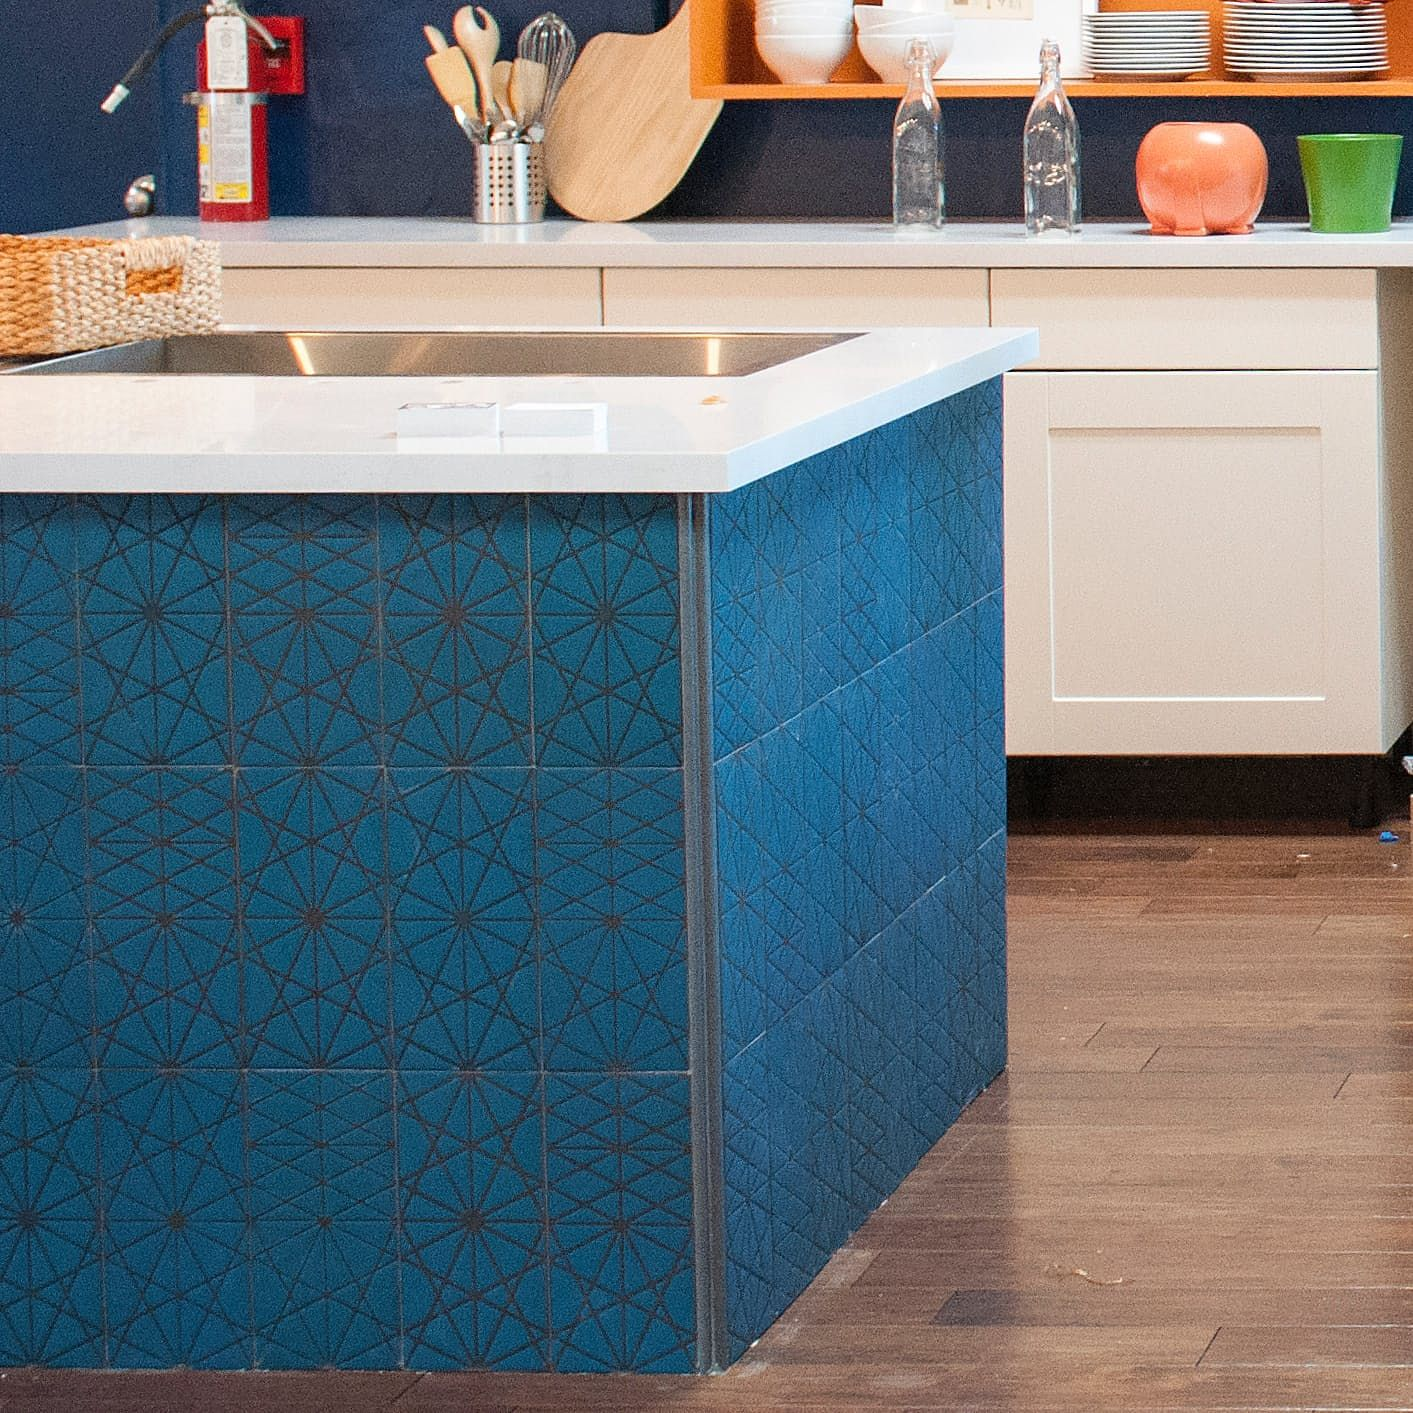 New Bling For Your Kitchen: Kismet Tiles | Heath ceramics, Kitchens ...